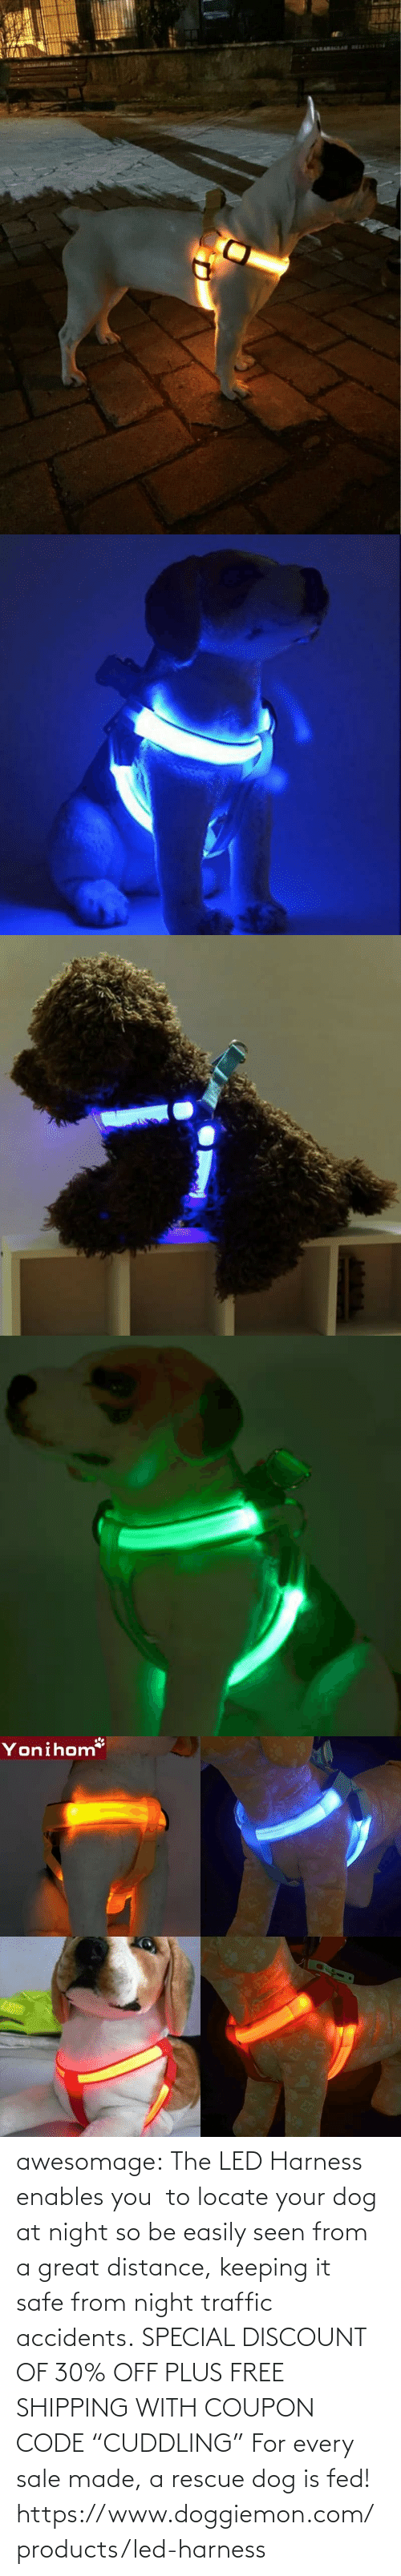 "Distance: A1KAMAGLAR RELERVS  BILIRALLAN JOI   Yonihom  E3  X1  EX awesomage:   The LED Harness enables you  to locate your dog at night so be easily seen from a great distance, keeping it safe from night traffic accidents. SPECIAL DISCOUNT OF 30% OFF PLUS FREE SHIPPING WITH COUPON CODE ""CUDDLING"" For every sale made, a rescue dog is fed!   https://www.doggiemon.com/products/led-harness"